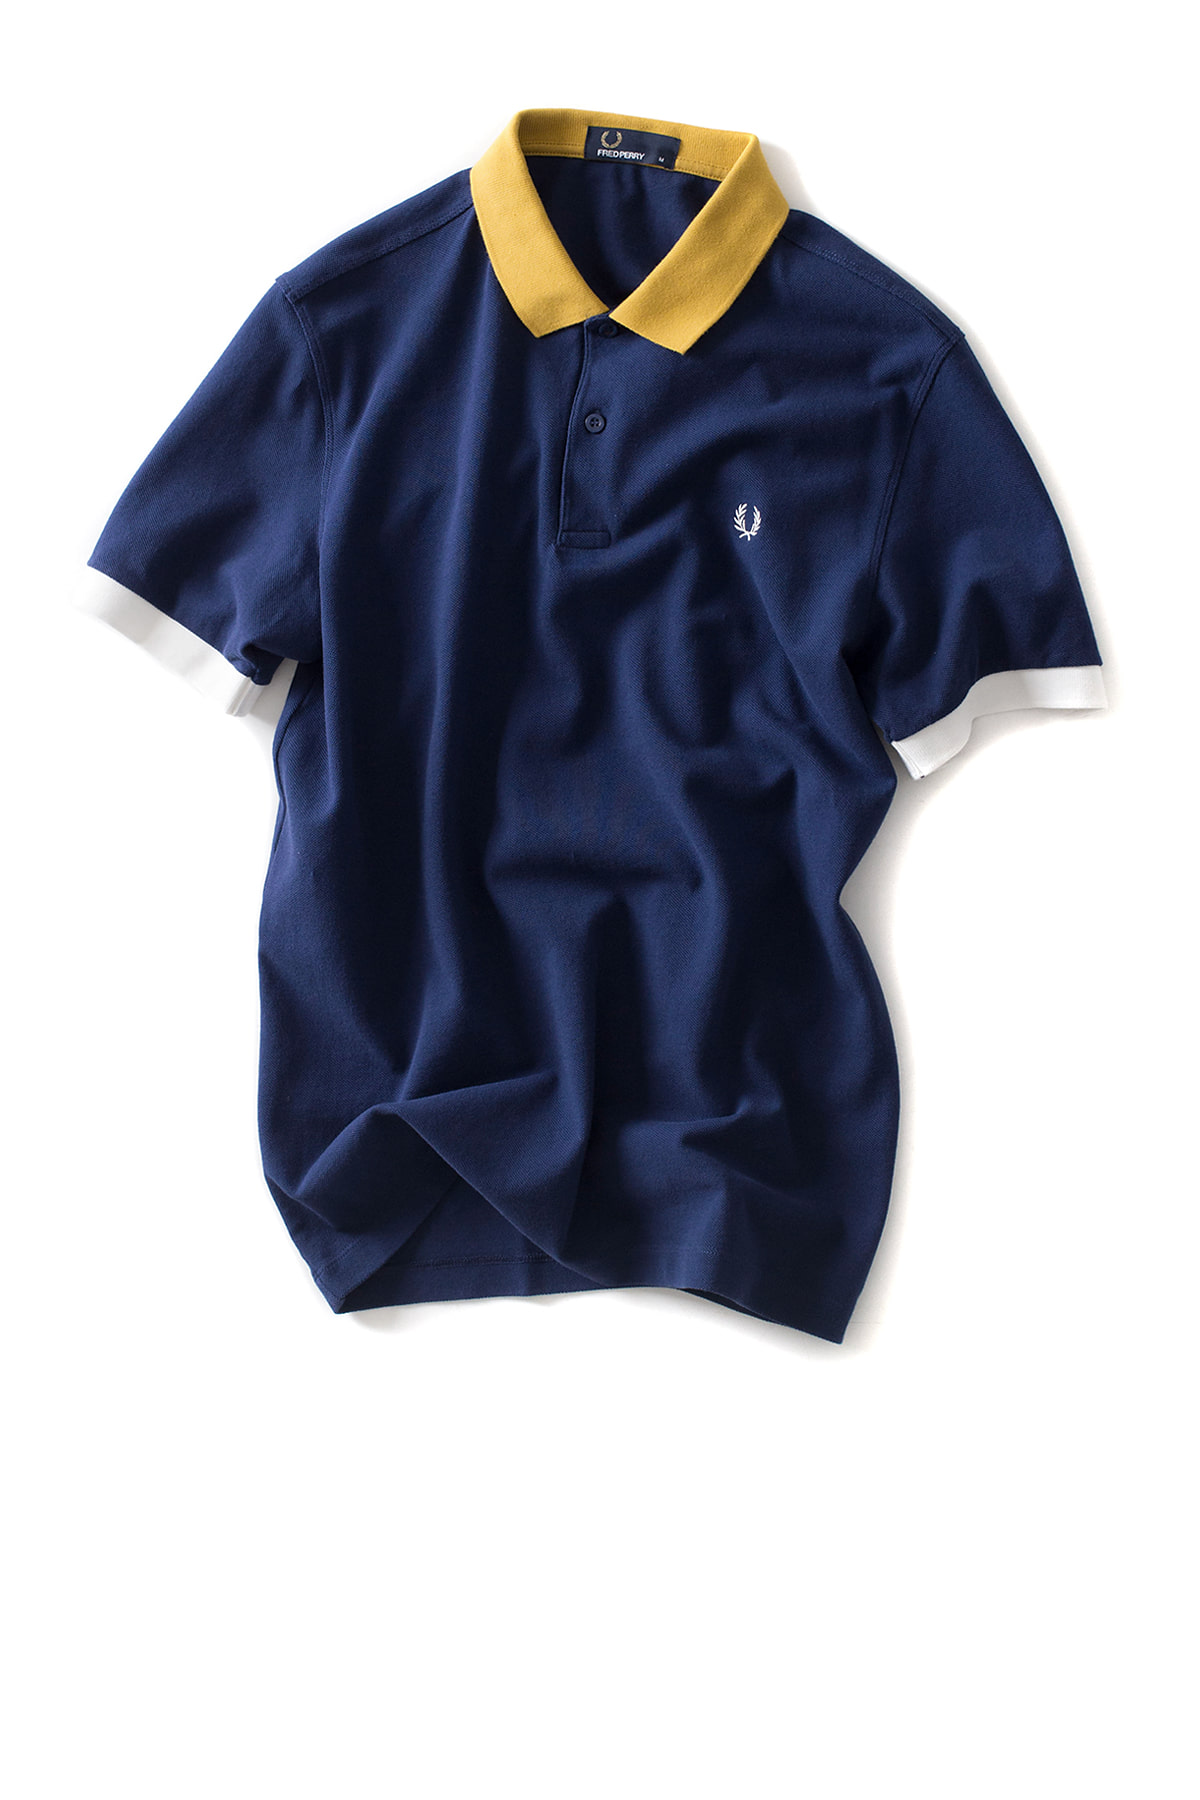 FRED PERRY : Colour Block Pique Shirt (French Navy)